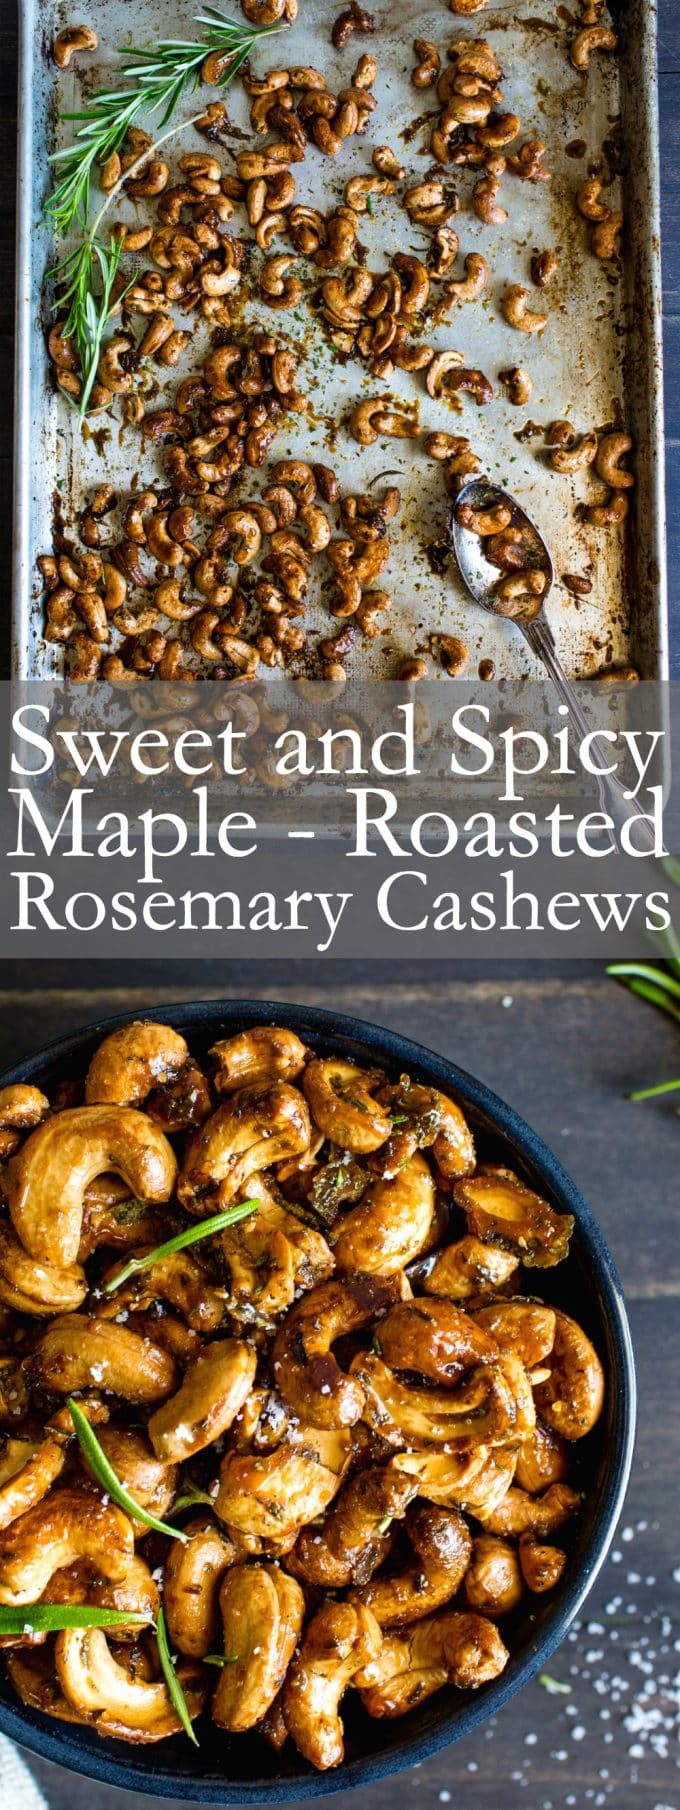 Recipe Video - Sweet and Spicy Maple-Roasted Rosemary Cashews make a fabulous appetizer, snack or gift, anytime! #VeganFood #GlutenFreeFood #Recipe #HolidaySnacks #RoastedNuts